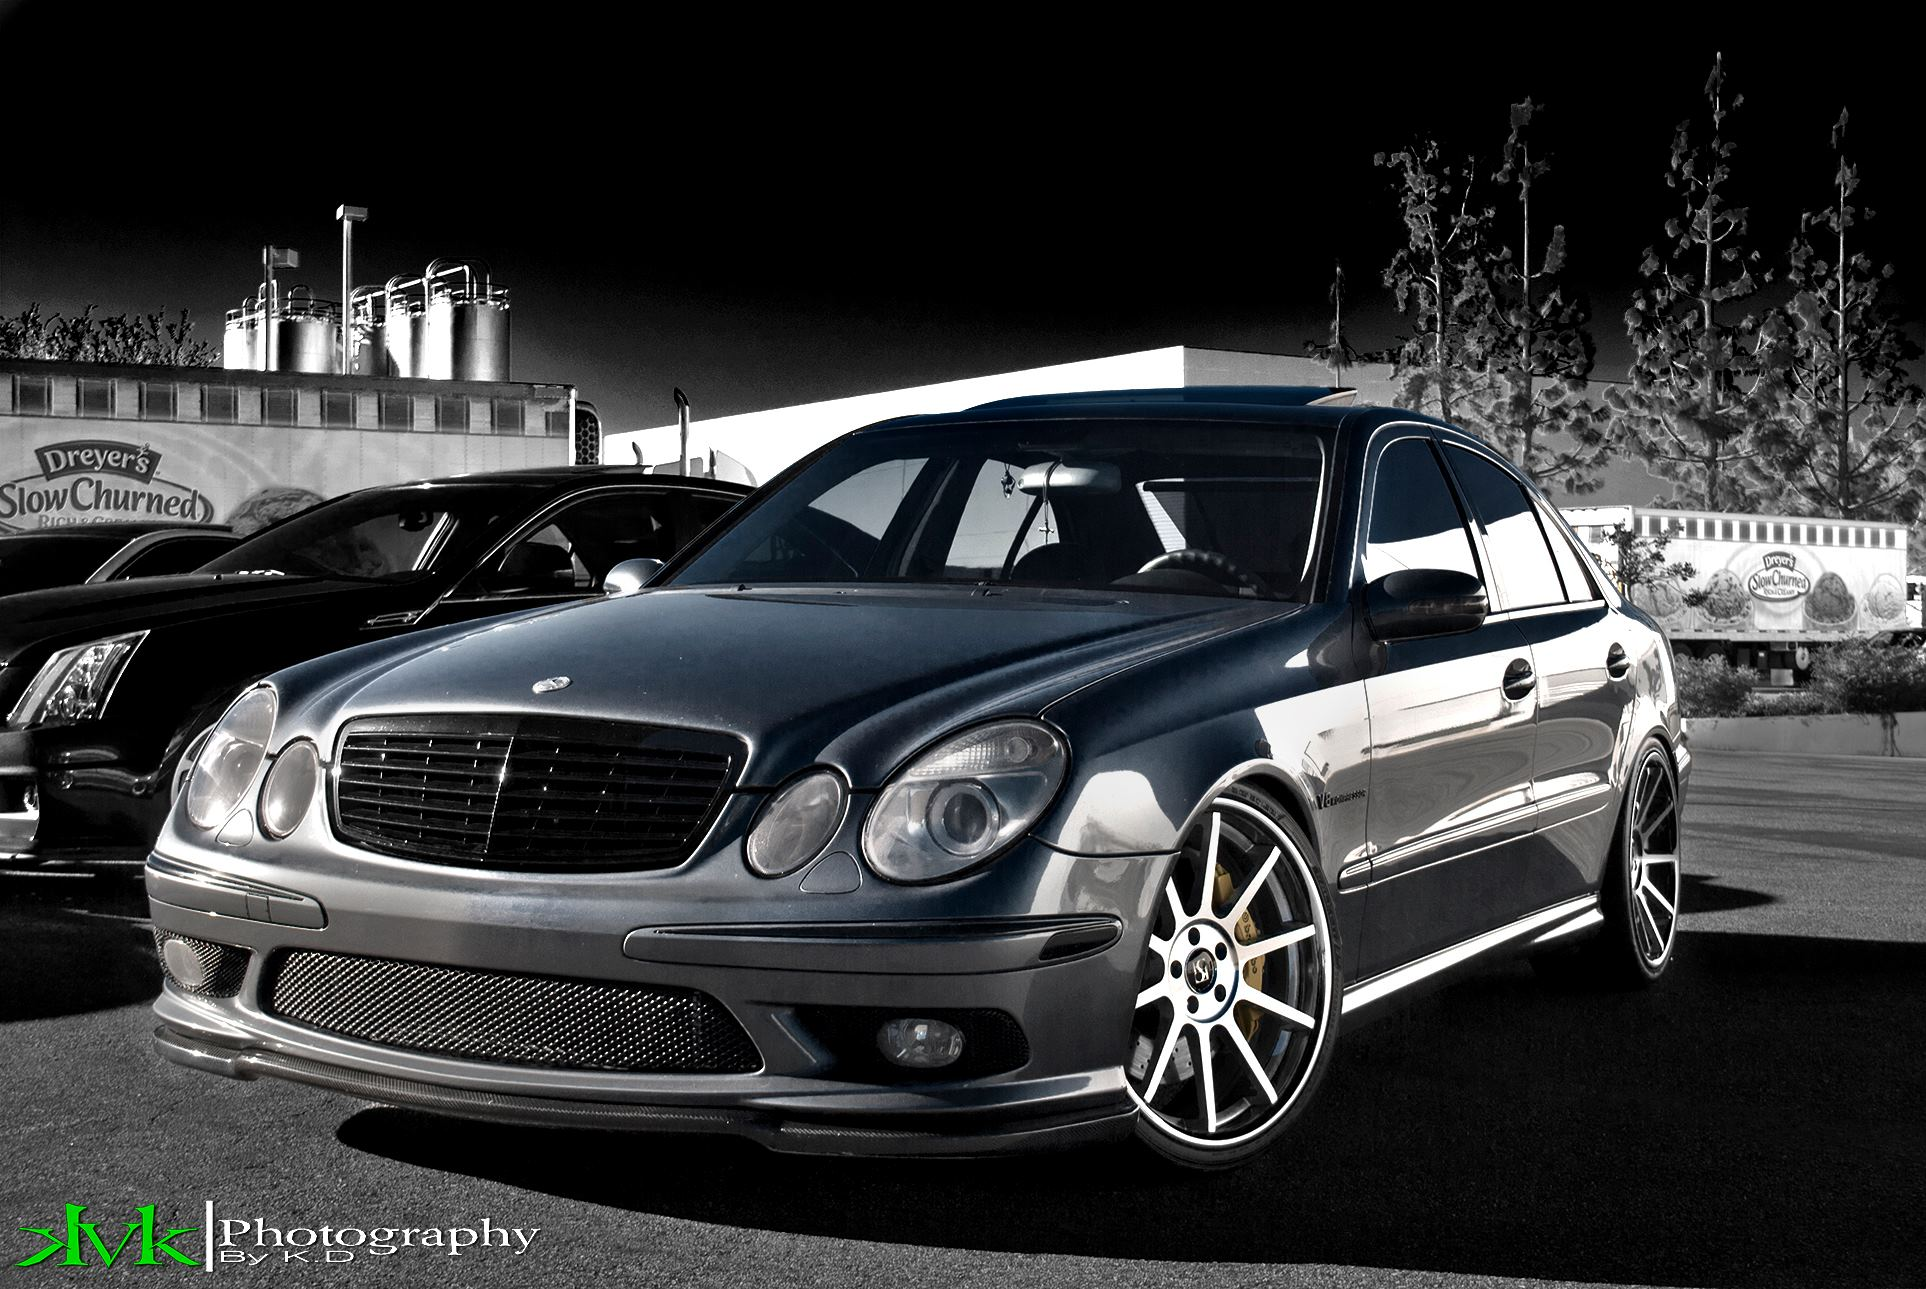 Koko Kuture Lindos Machined Black on Mercedes Benz E63 AMG